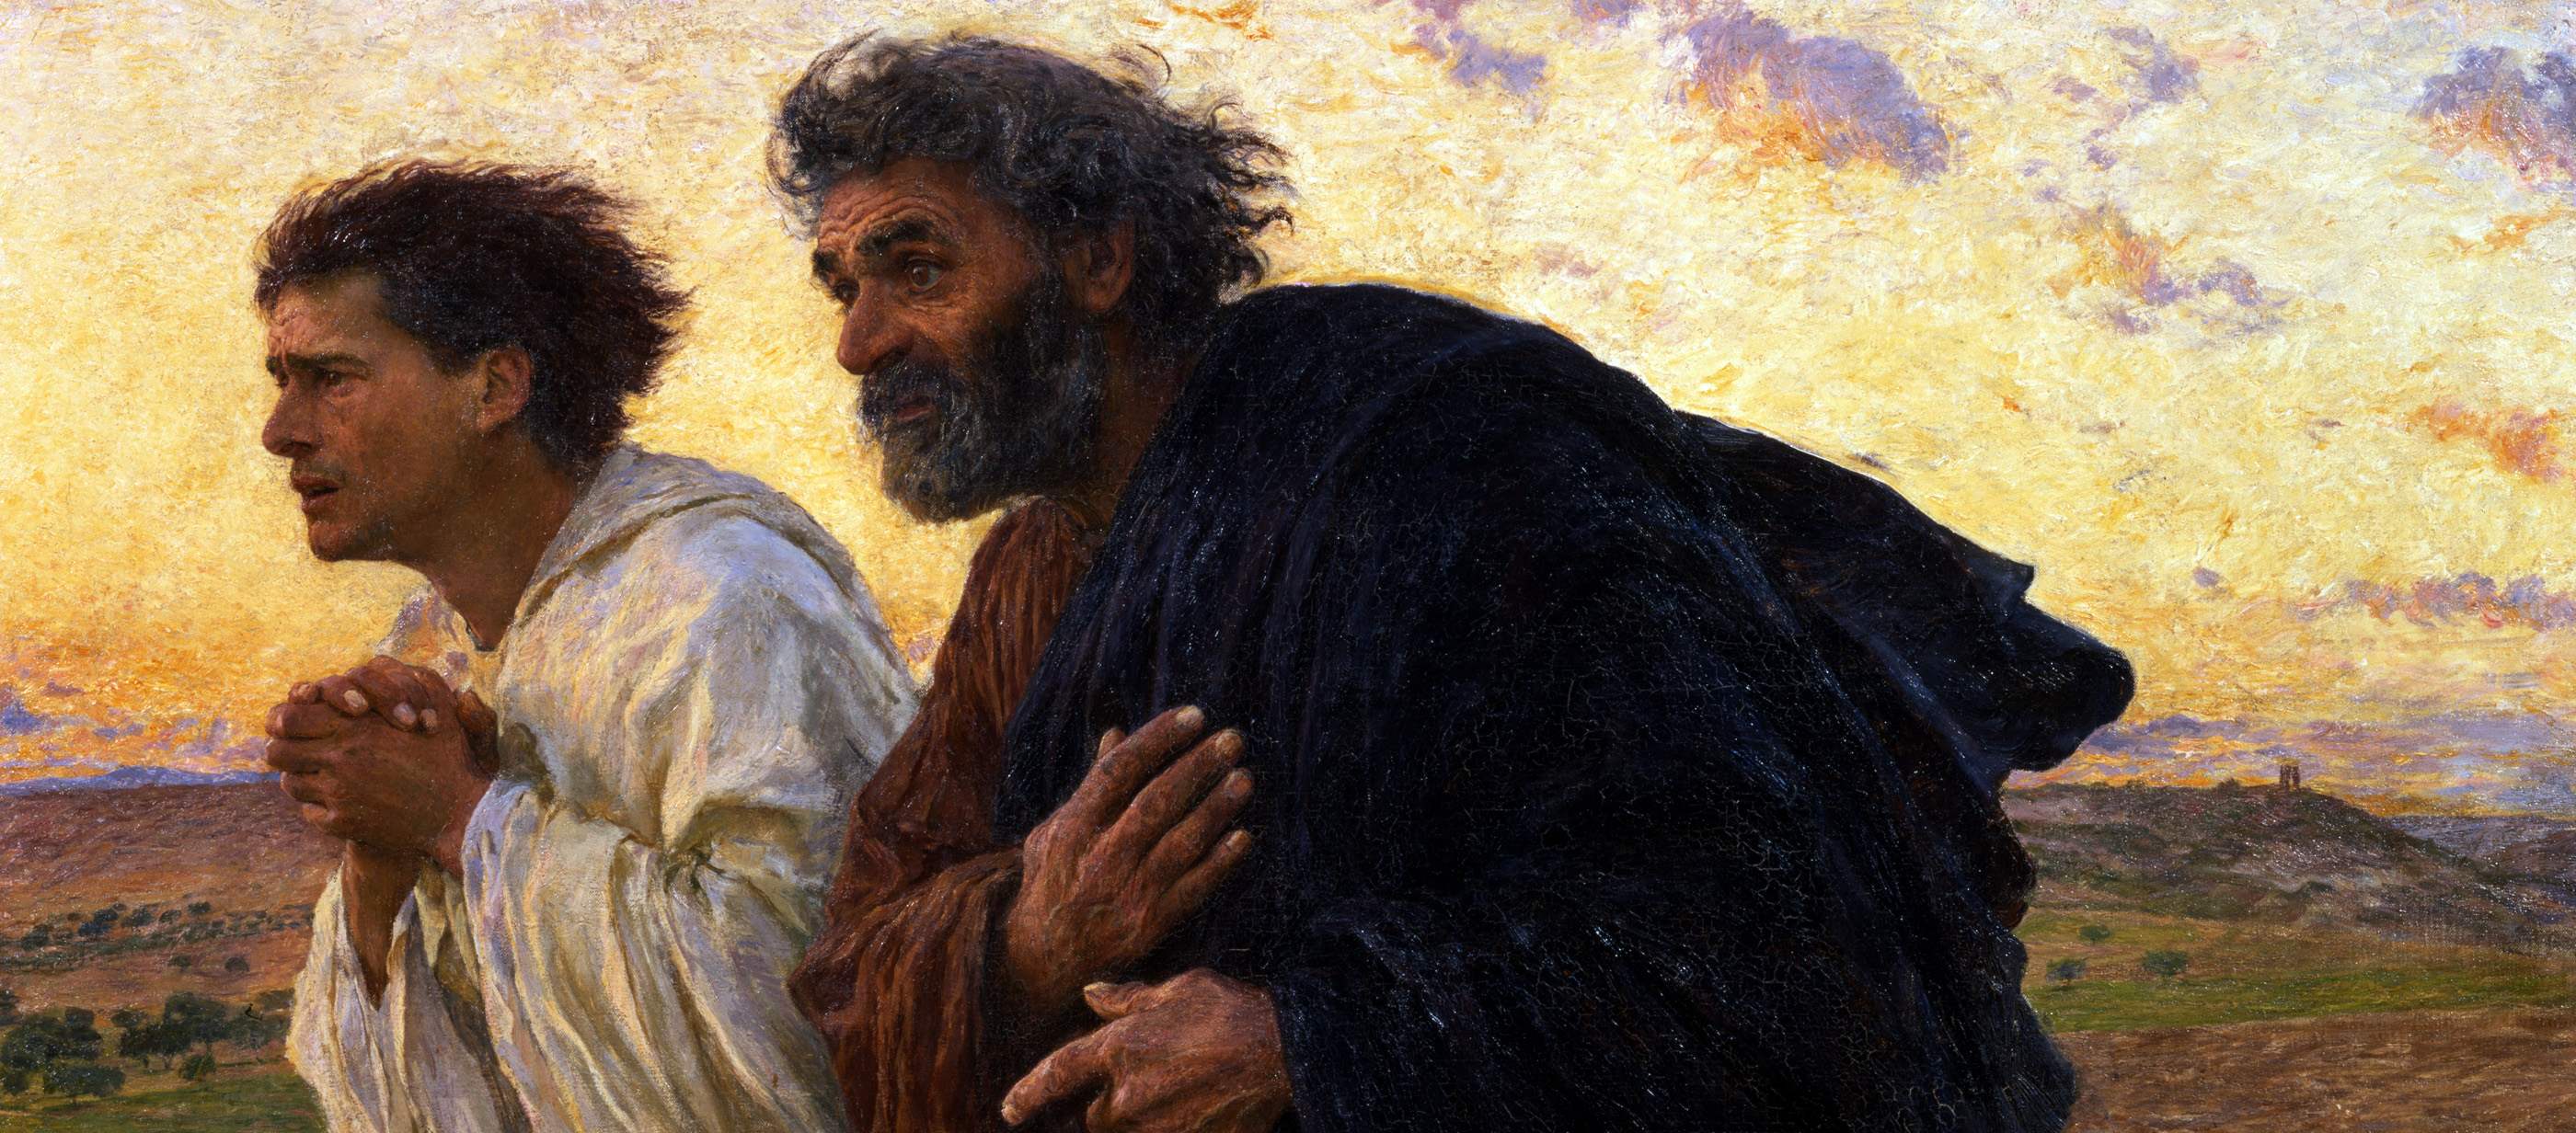 The Disciples Peter and John Running to the Sepulcher on the Morning of the Resurrection, by Eugène Burnand, 1898. Musée d'Orsay, Paris.